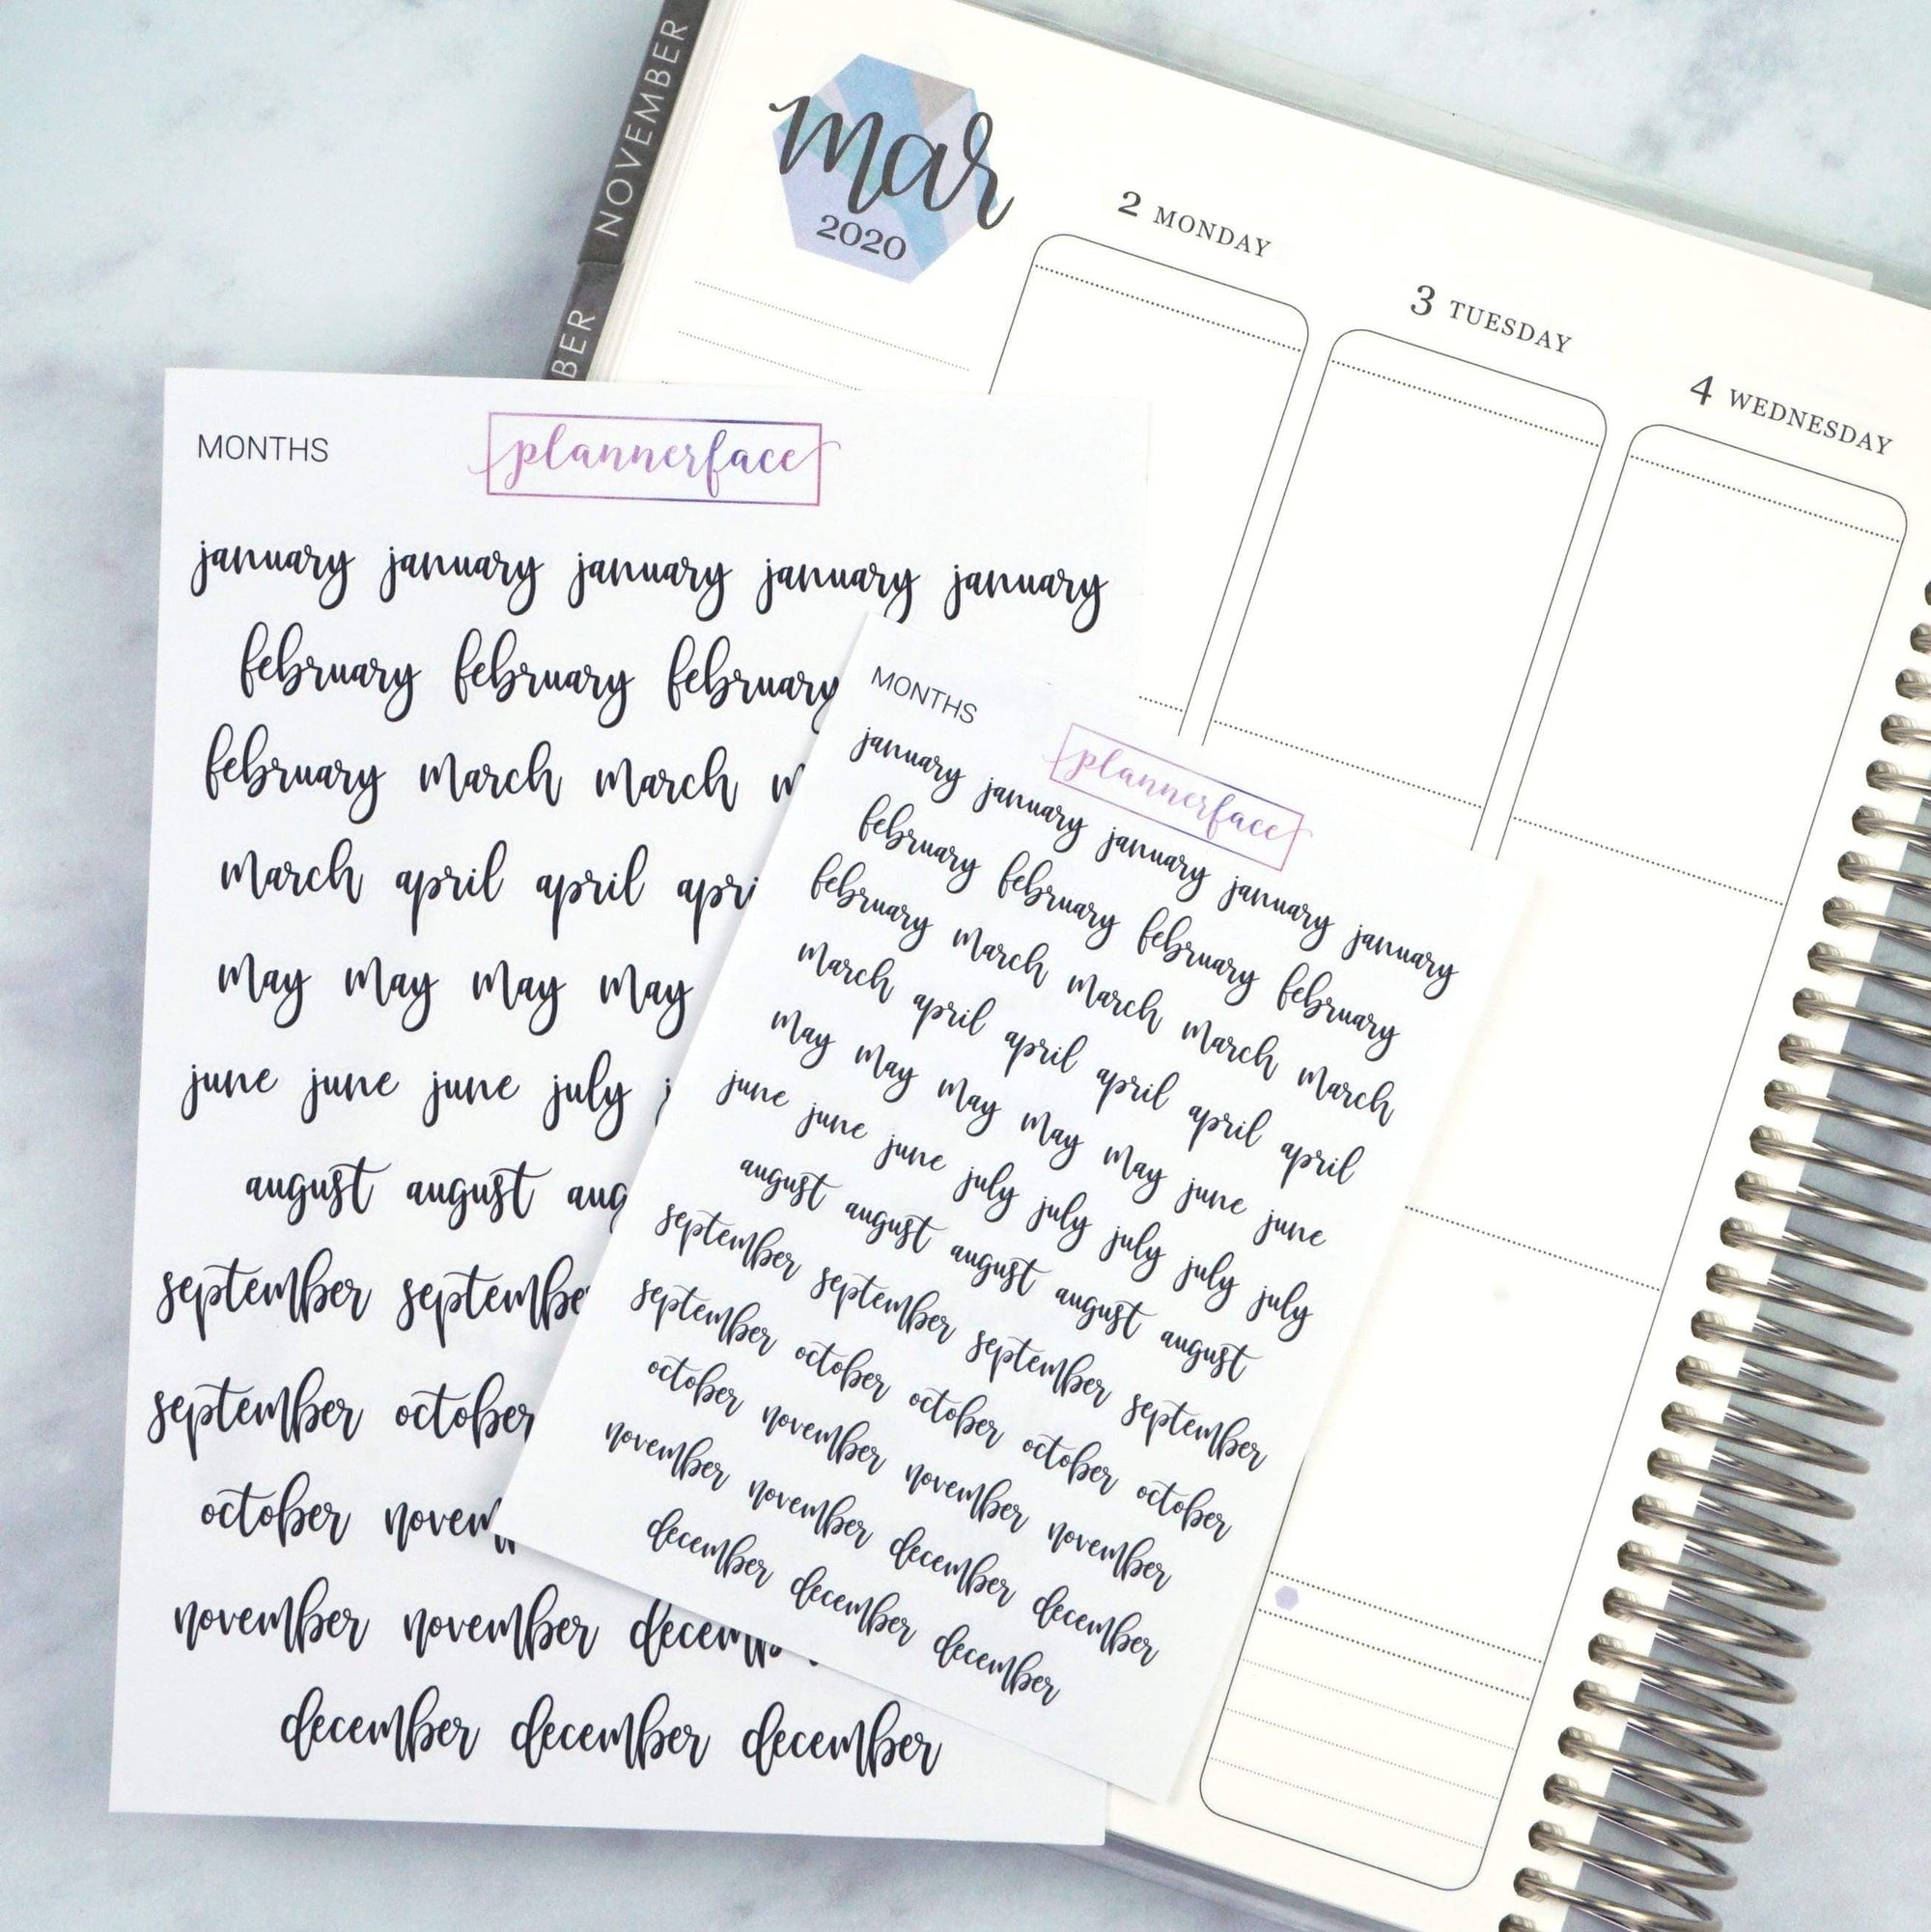 Plannerface Mini Months of the Year | Lettering Planner Stickers